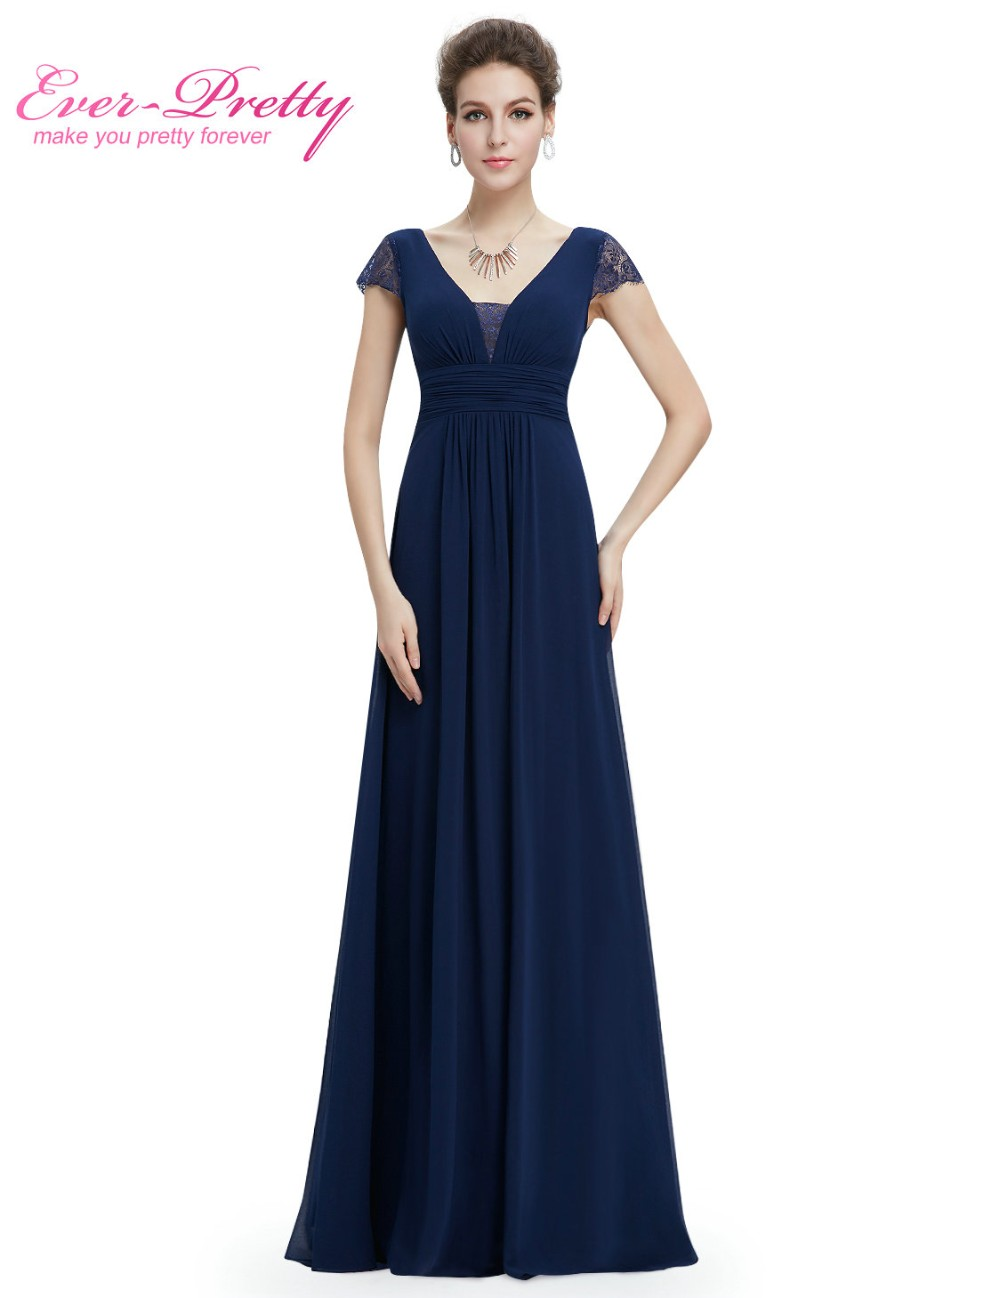 Short Sleeves Mother Of The Bride Dress Women Low stretch Long Navy Blue Mother of the Bride Dresses 2018